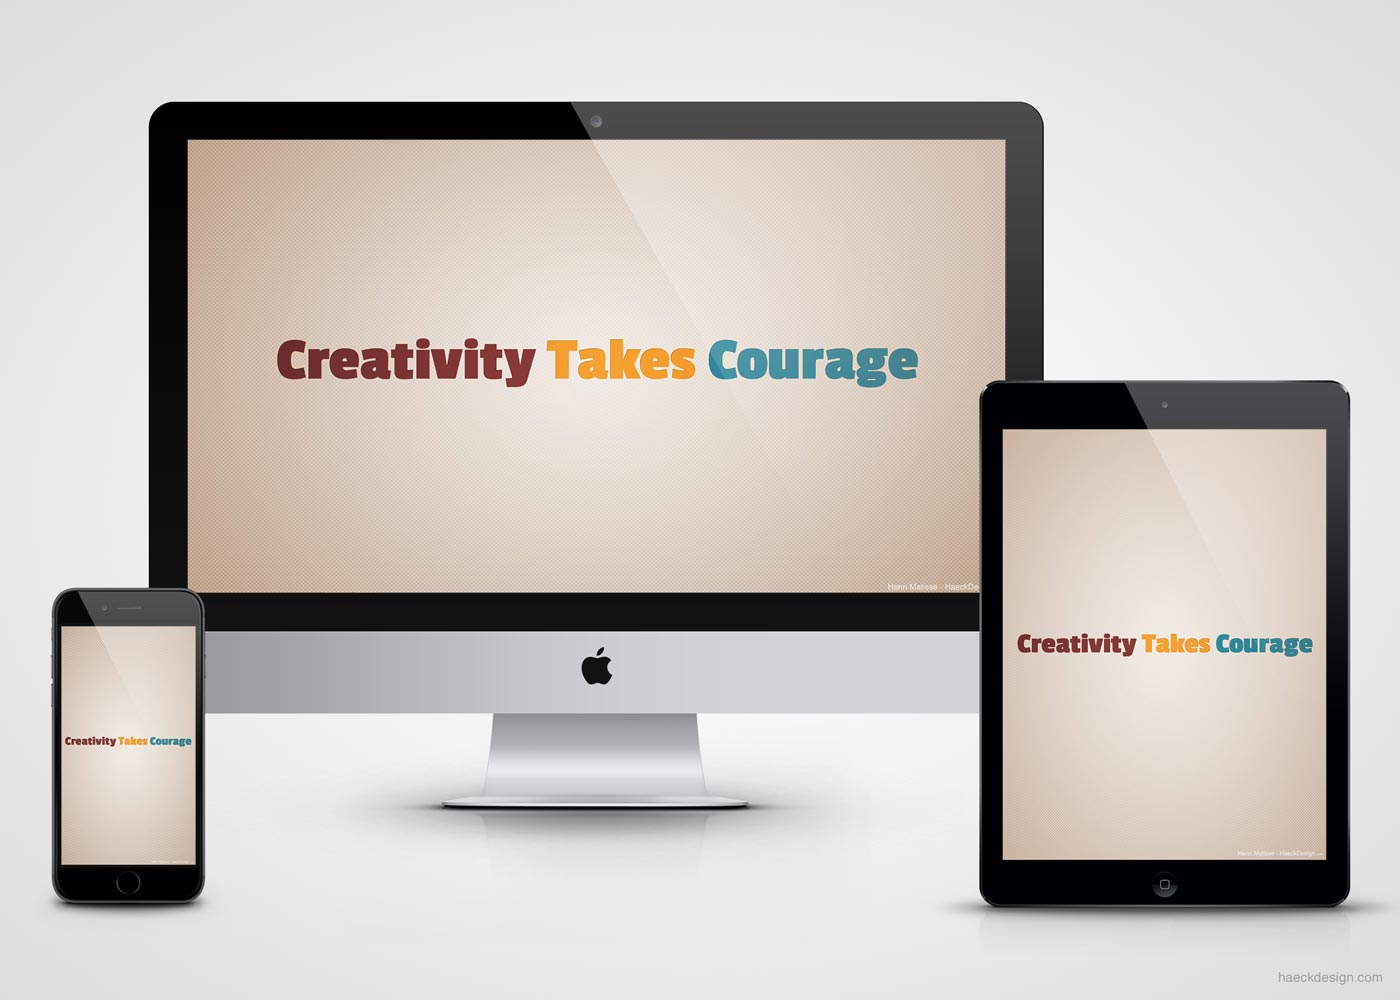 Creativity Takes Courage Wallpaper